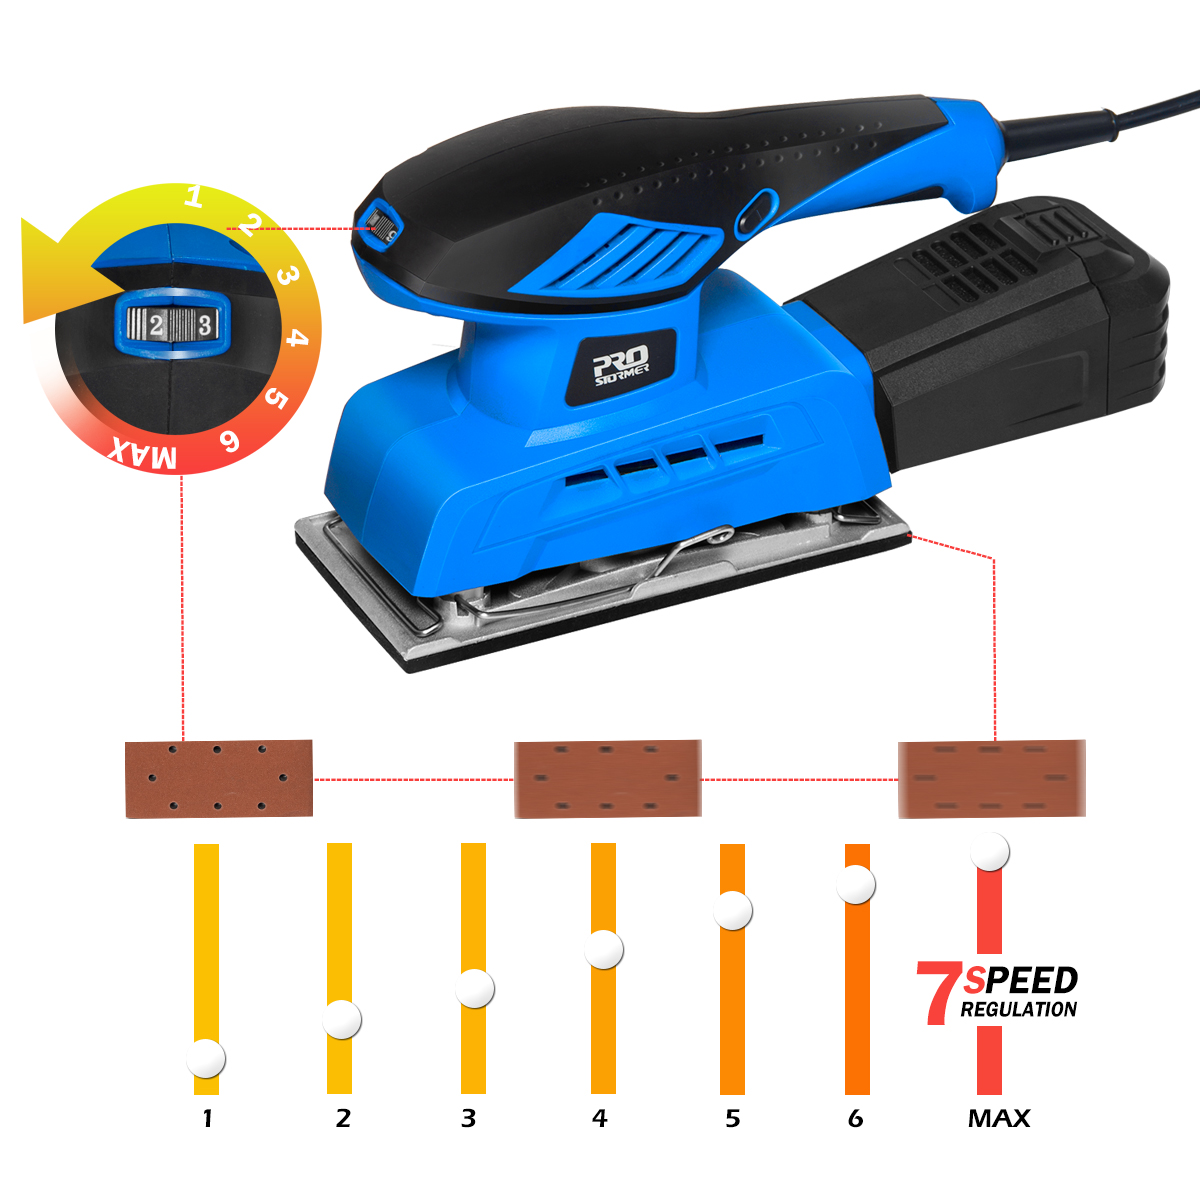 Tools : PROSTORMER 240W Sheet Random Orbit Sander 7 Variable Speed Random Sheet Sander Polisher 20Pcs Sandpapers Strong Dust Collection